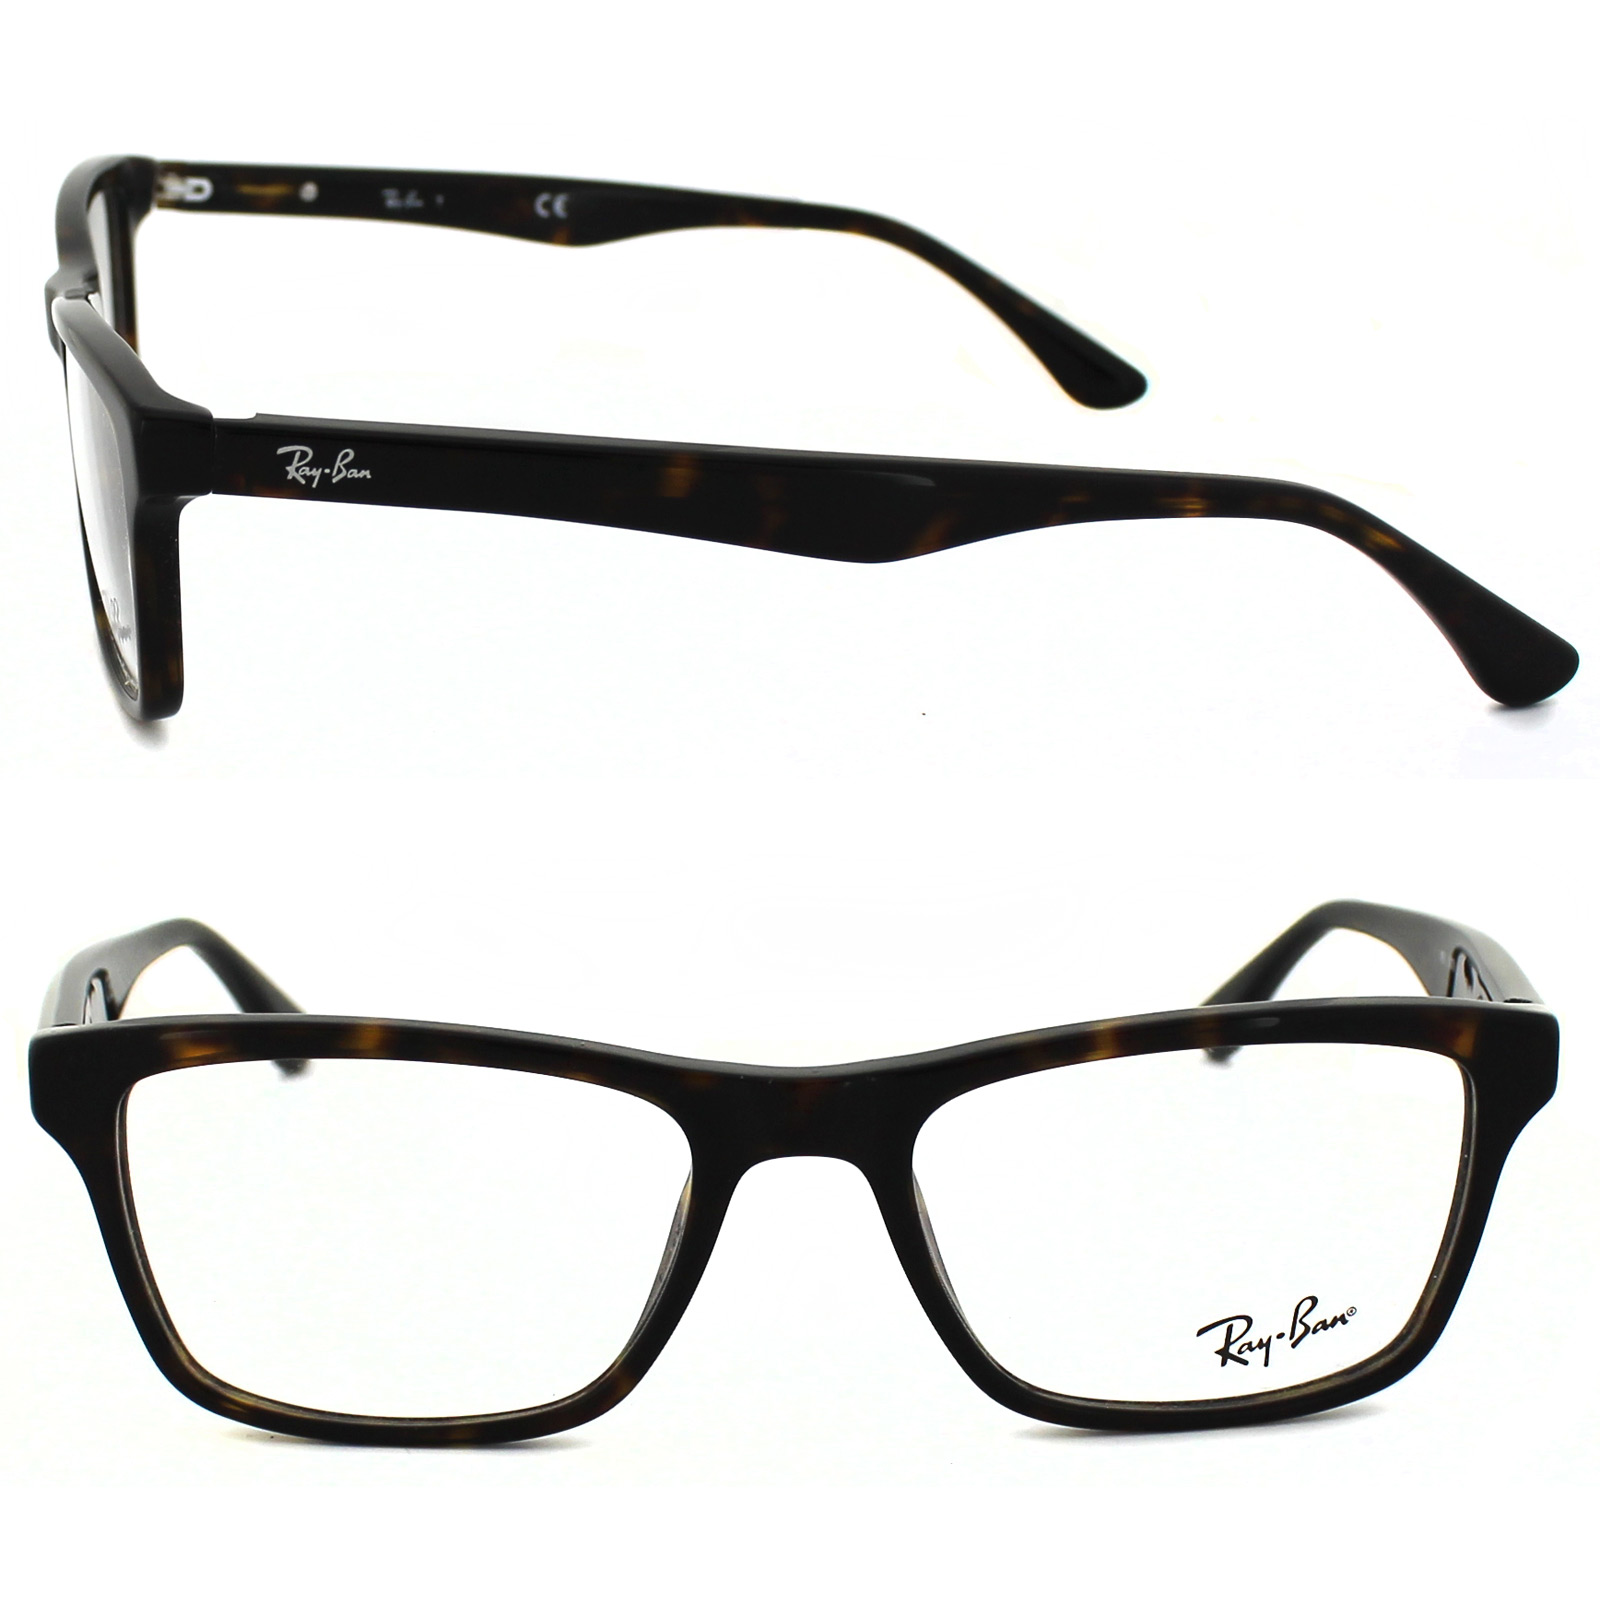 7b2e89a7d2 Ray-Ban Glasses Frames 5279 2012 Dark Havana 713132442982